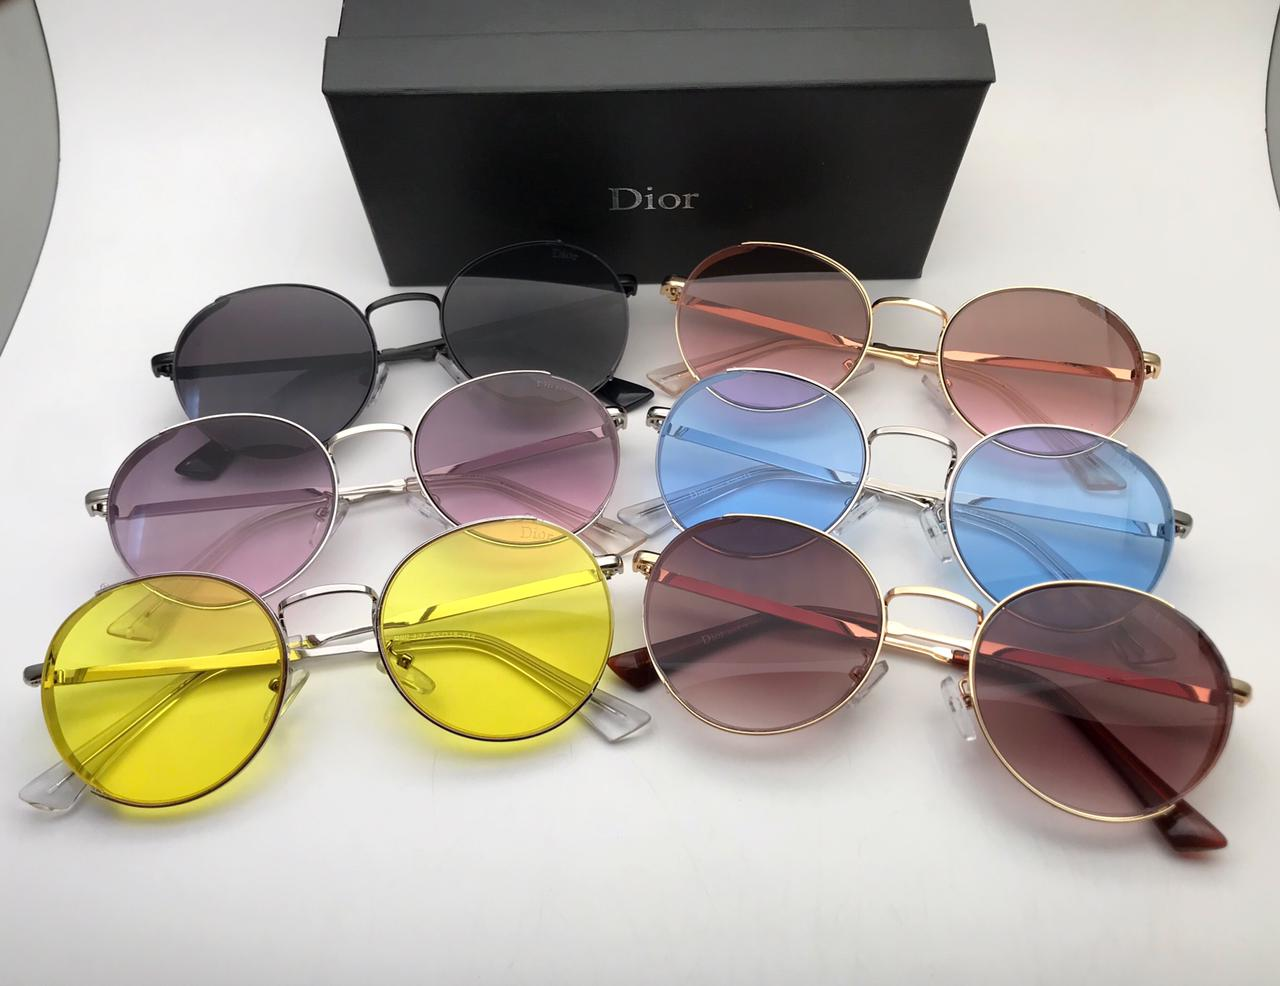 DIOR Sunglasses For Women with Brand box